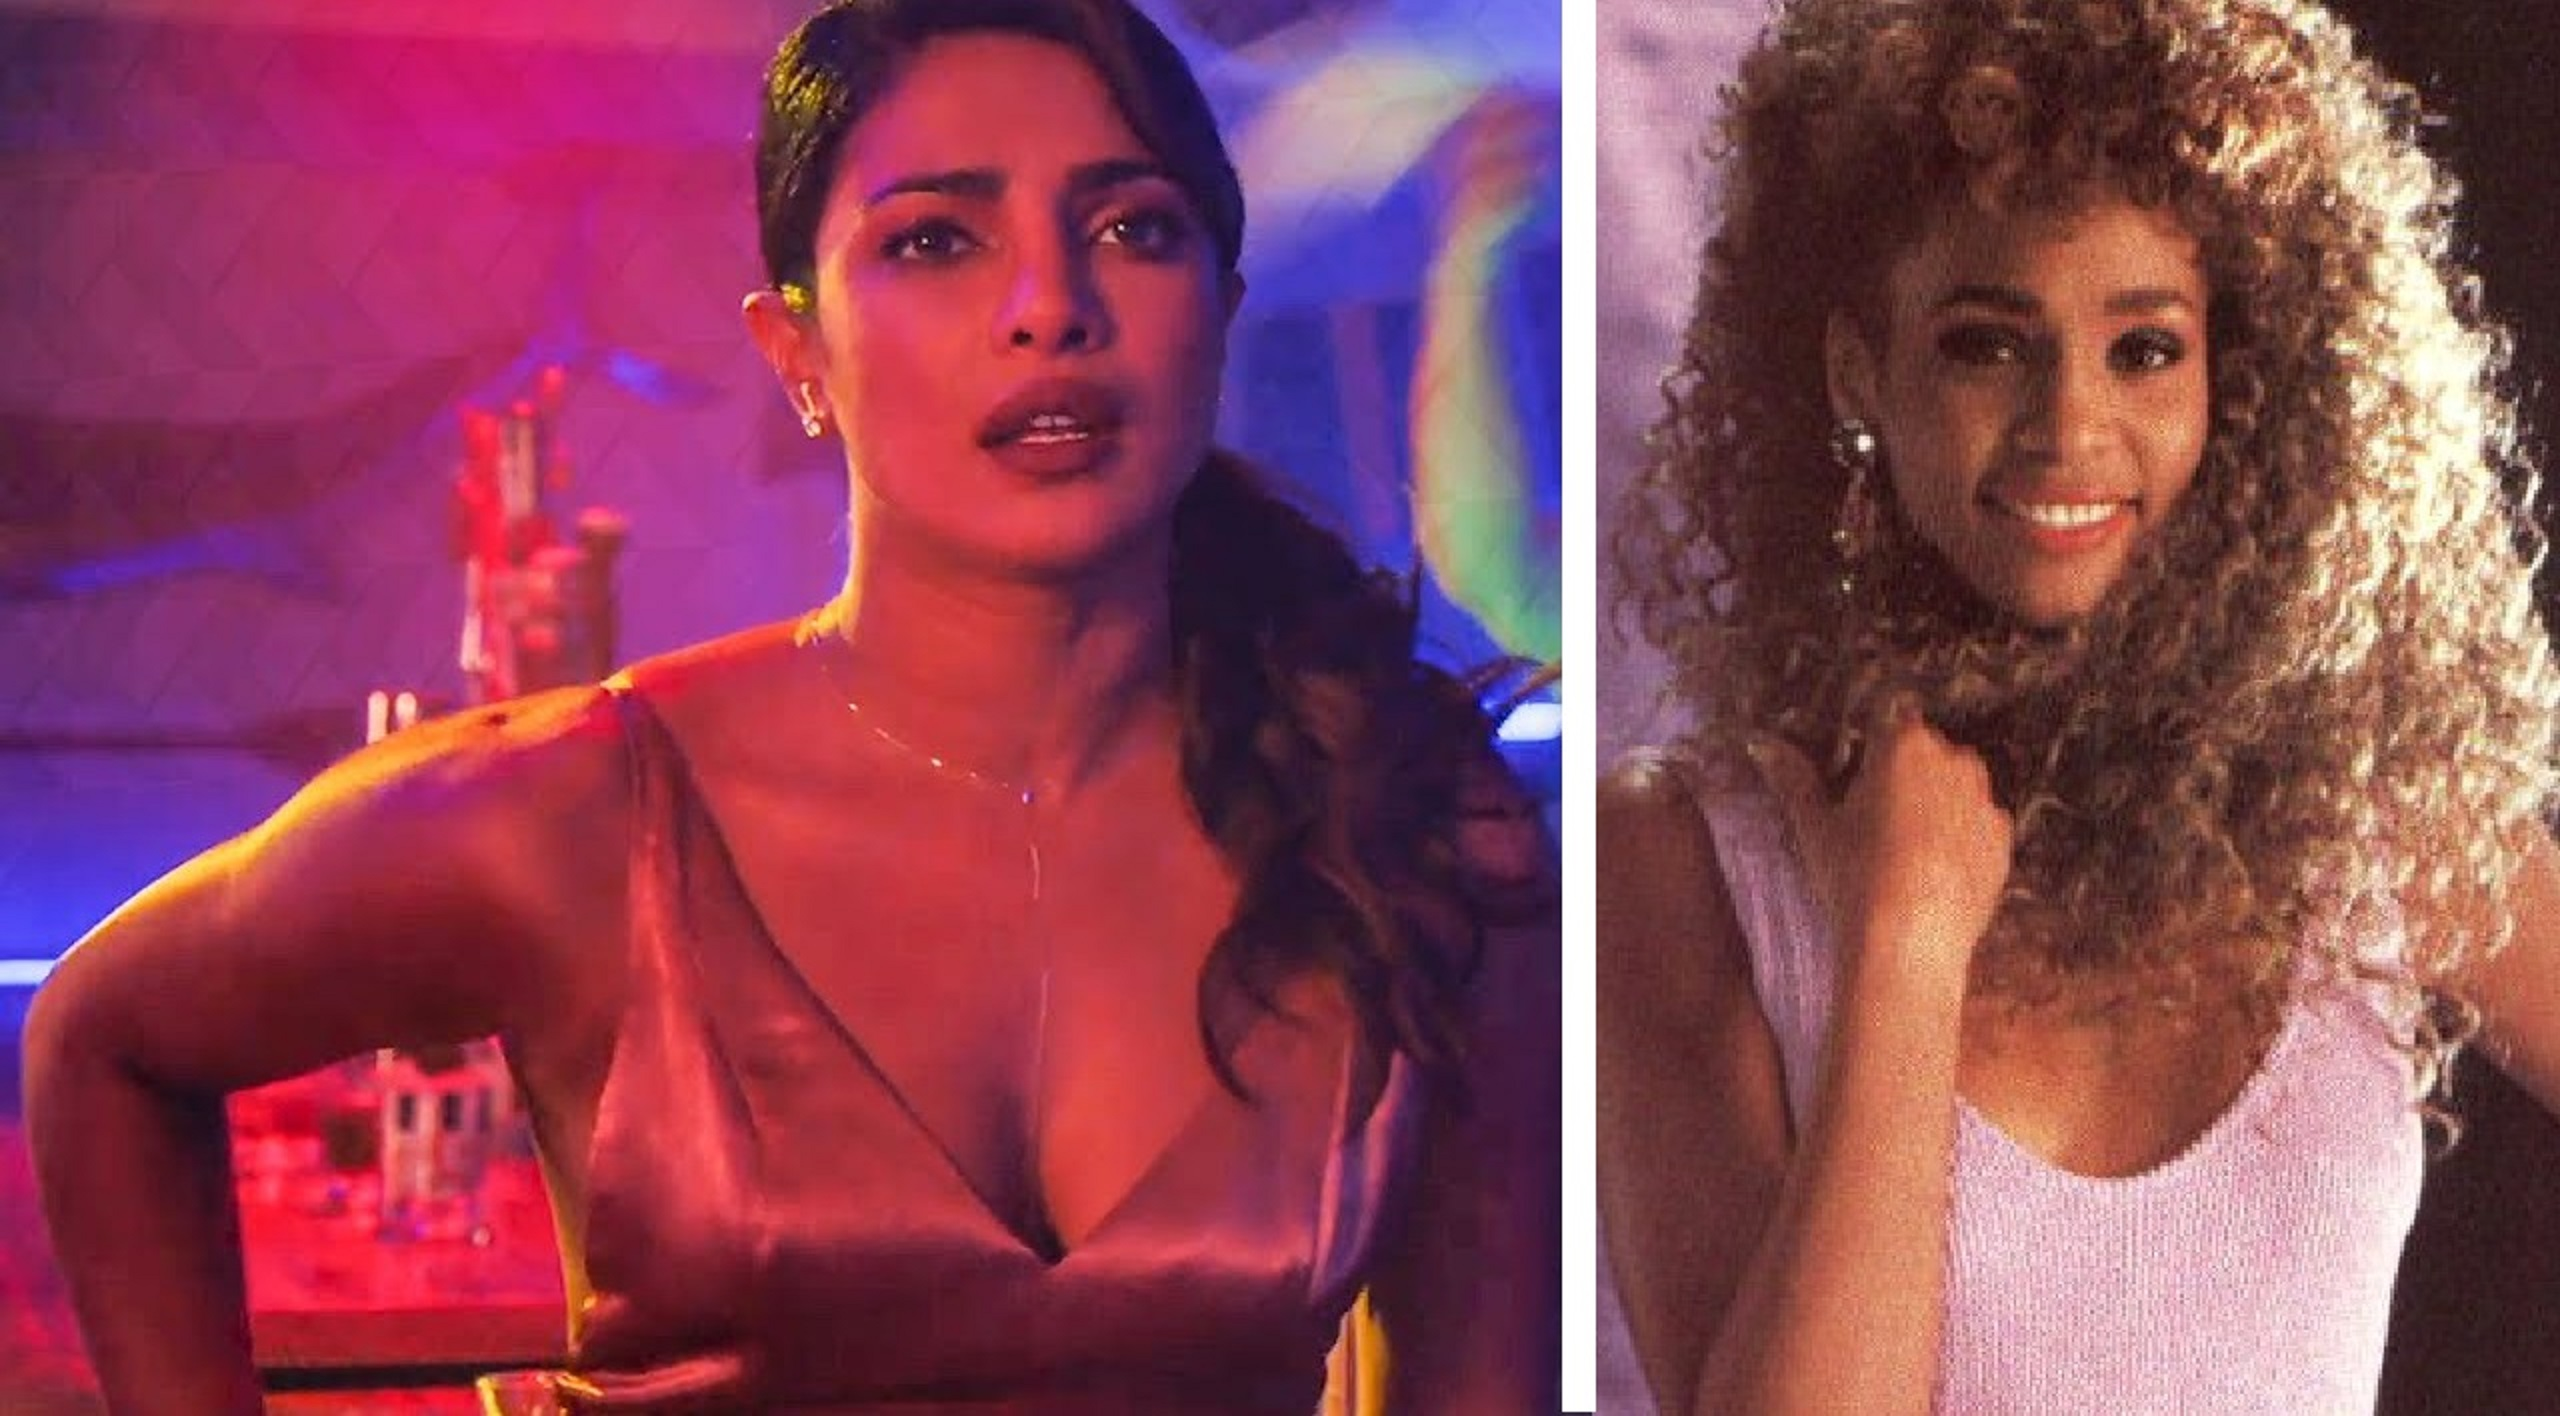 Watch: Priyanka Chopra and Rebel Wilson Dance-Off to Whitney Houston in Eccentric Karaoke Scene from 'Isn't It Romantic'